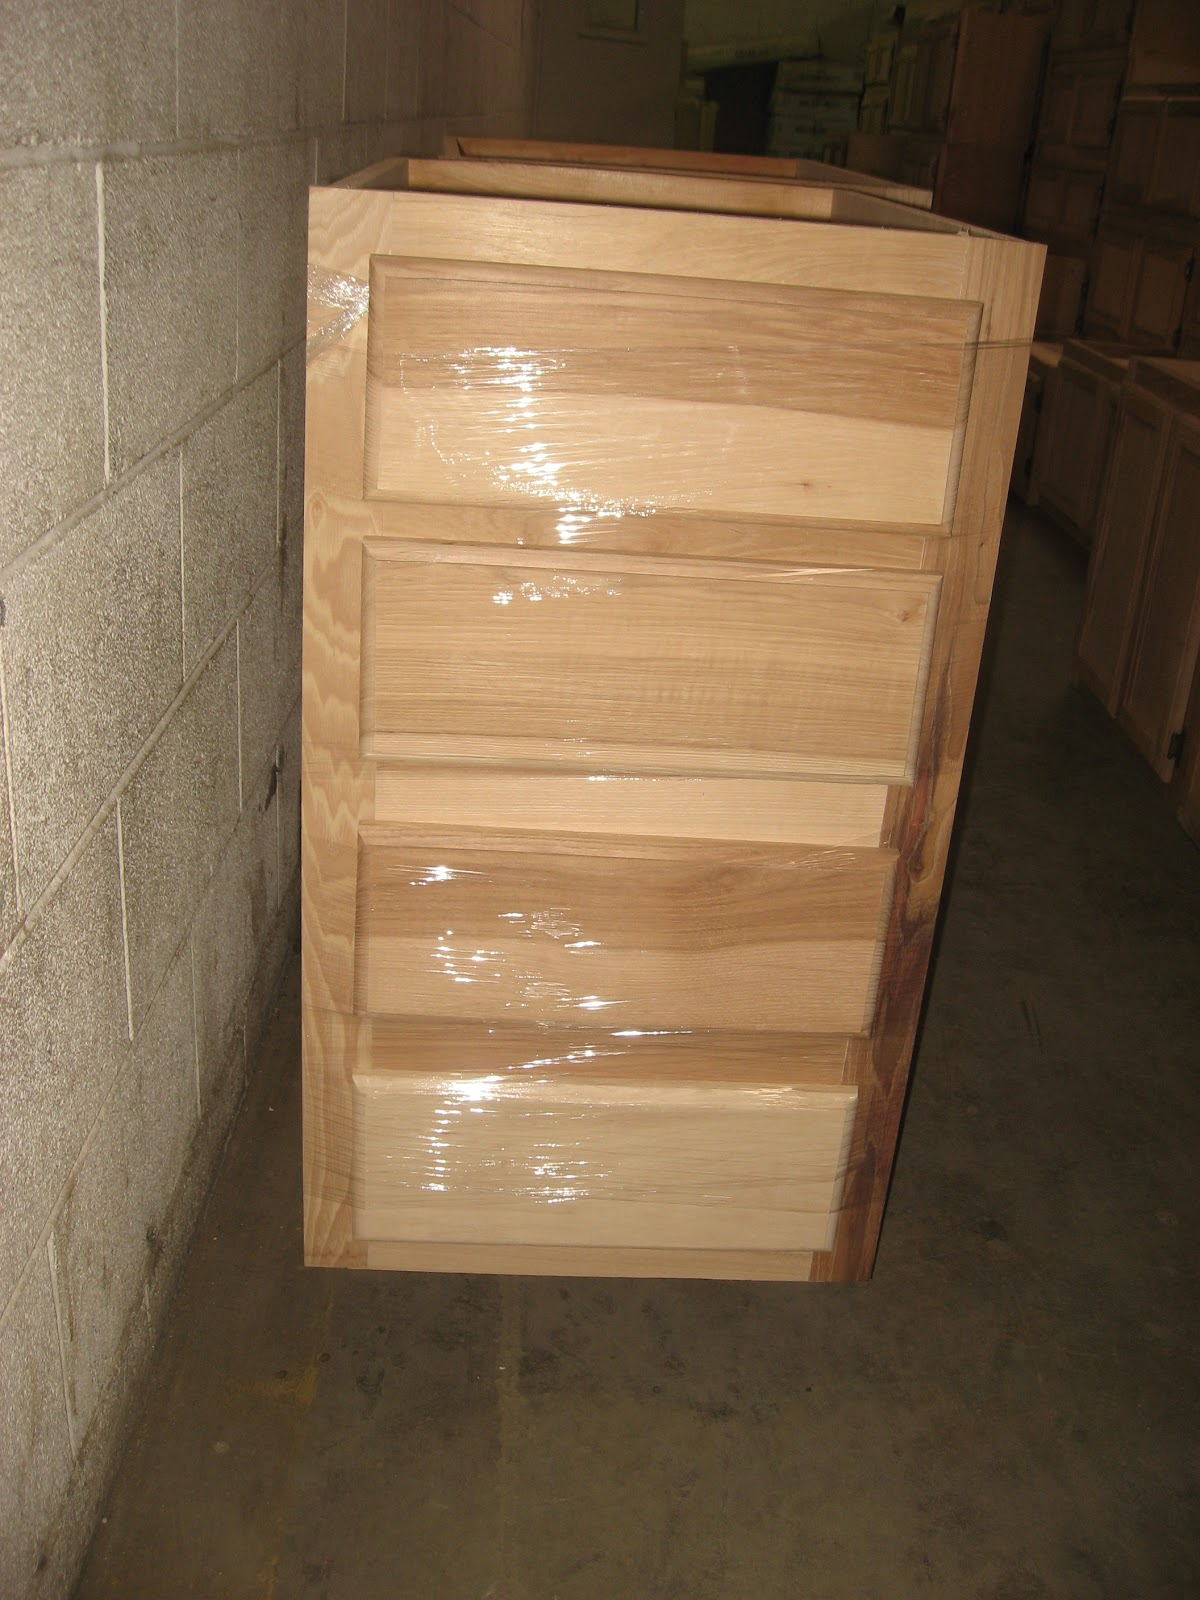 Discount Replacement Kitchen Cabinet Doors Slim Blue Ridge Surplus: Hickory Unfinished Cabinets